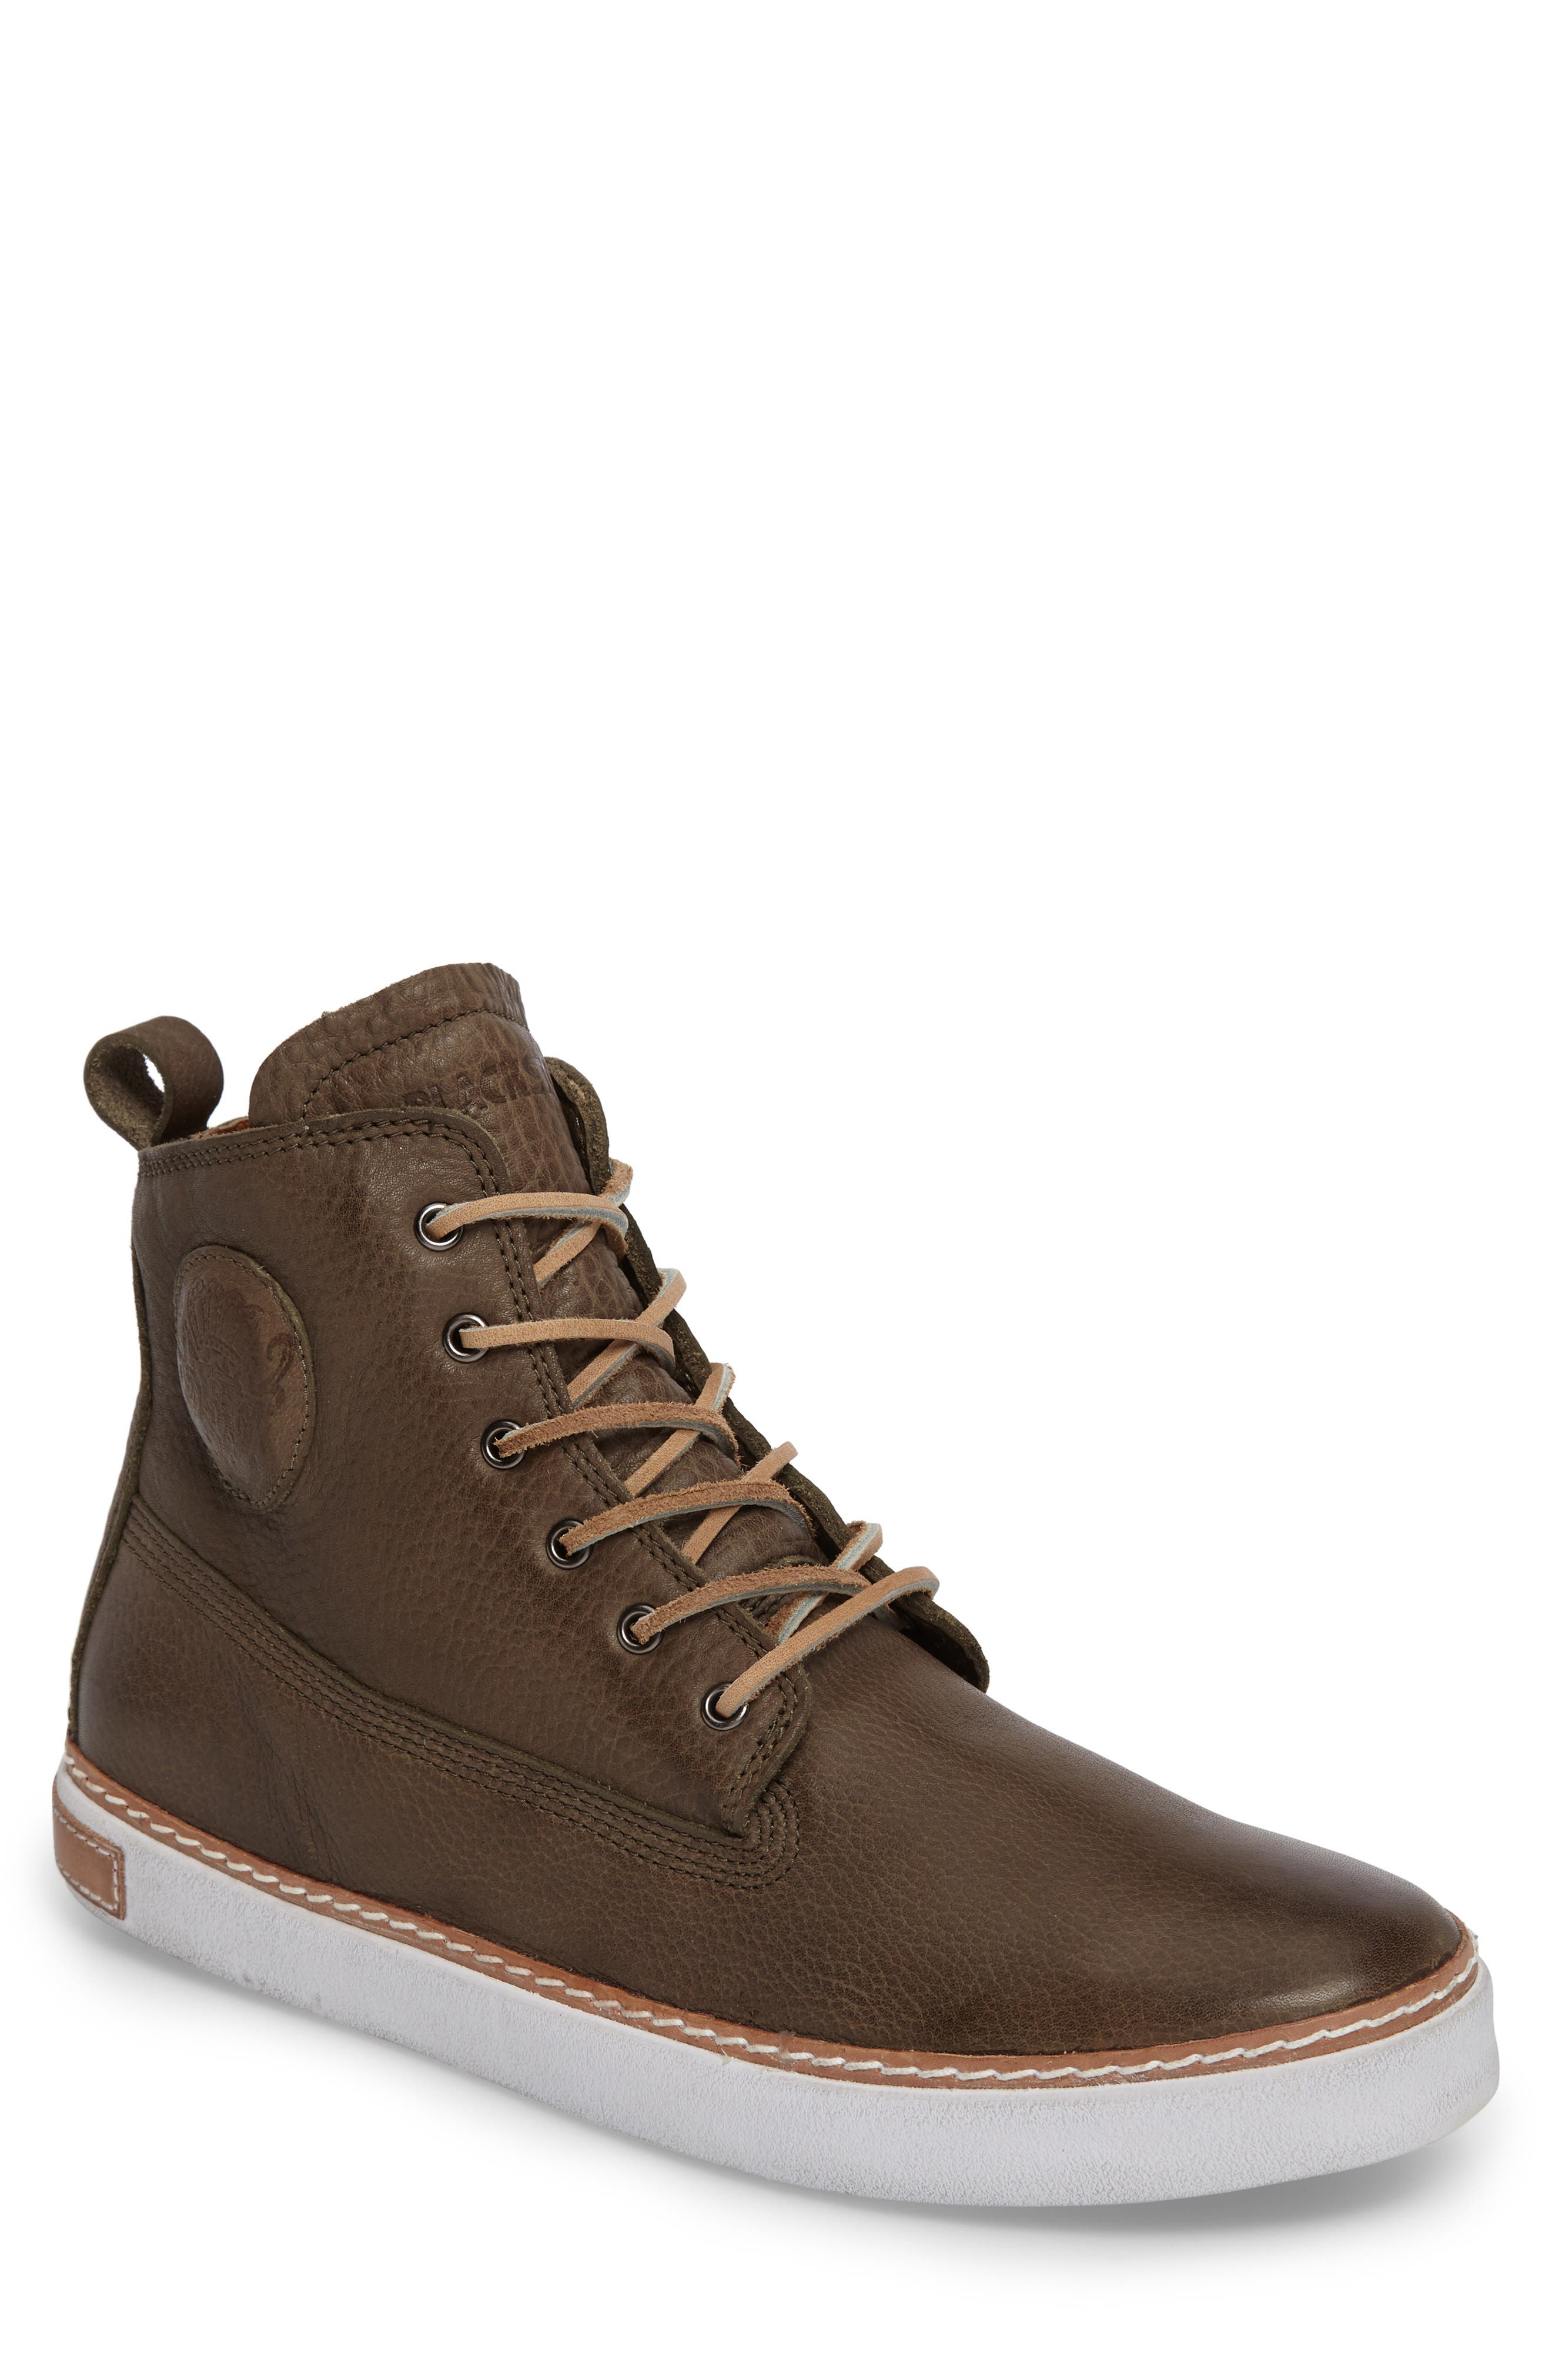 'AM02' Sneaker,                         Main,                         color, OLIVE LEATHER